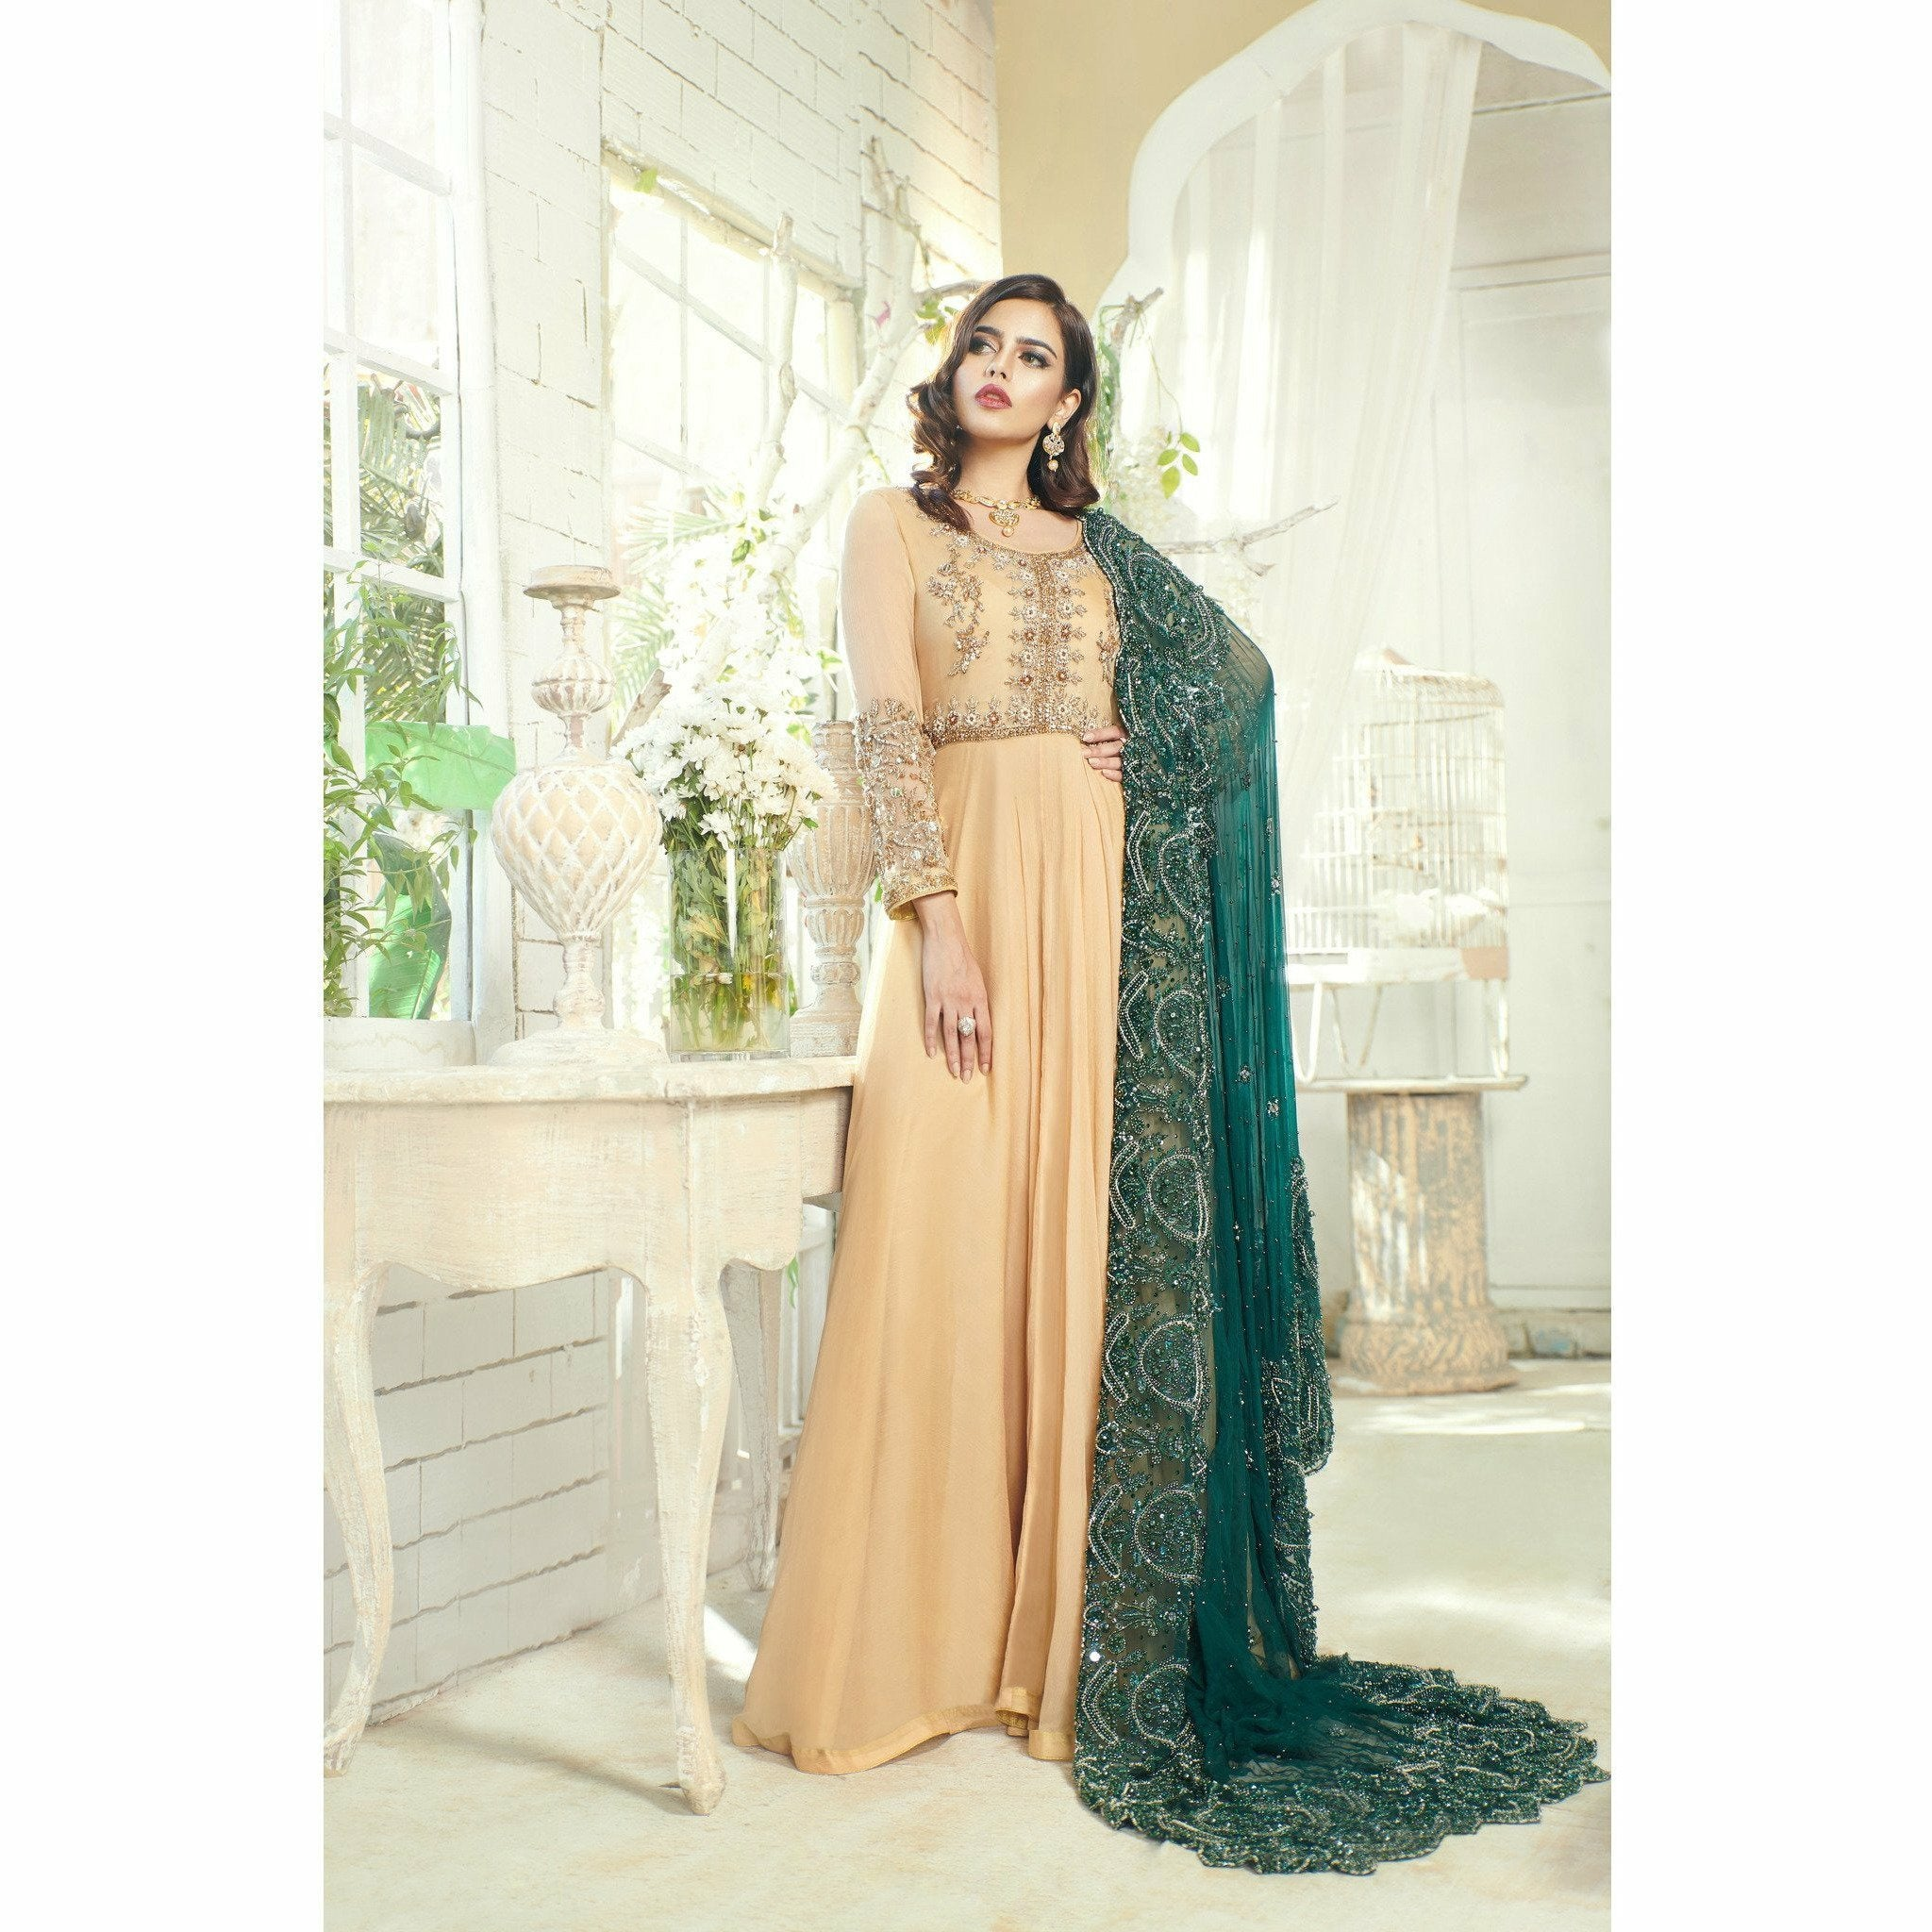 SALWAR KAMEEZ UK